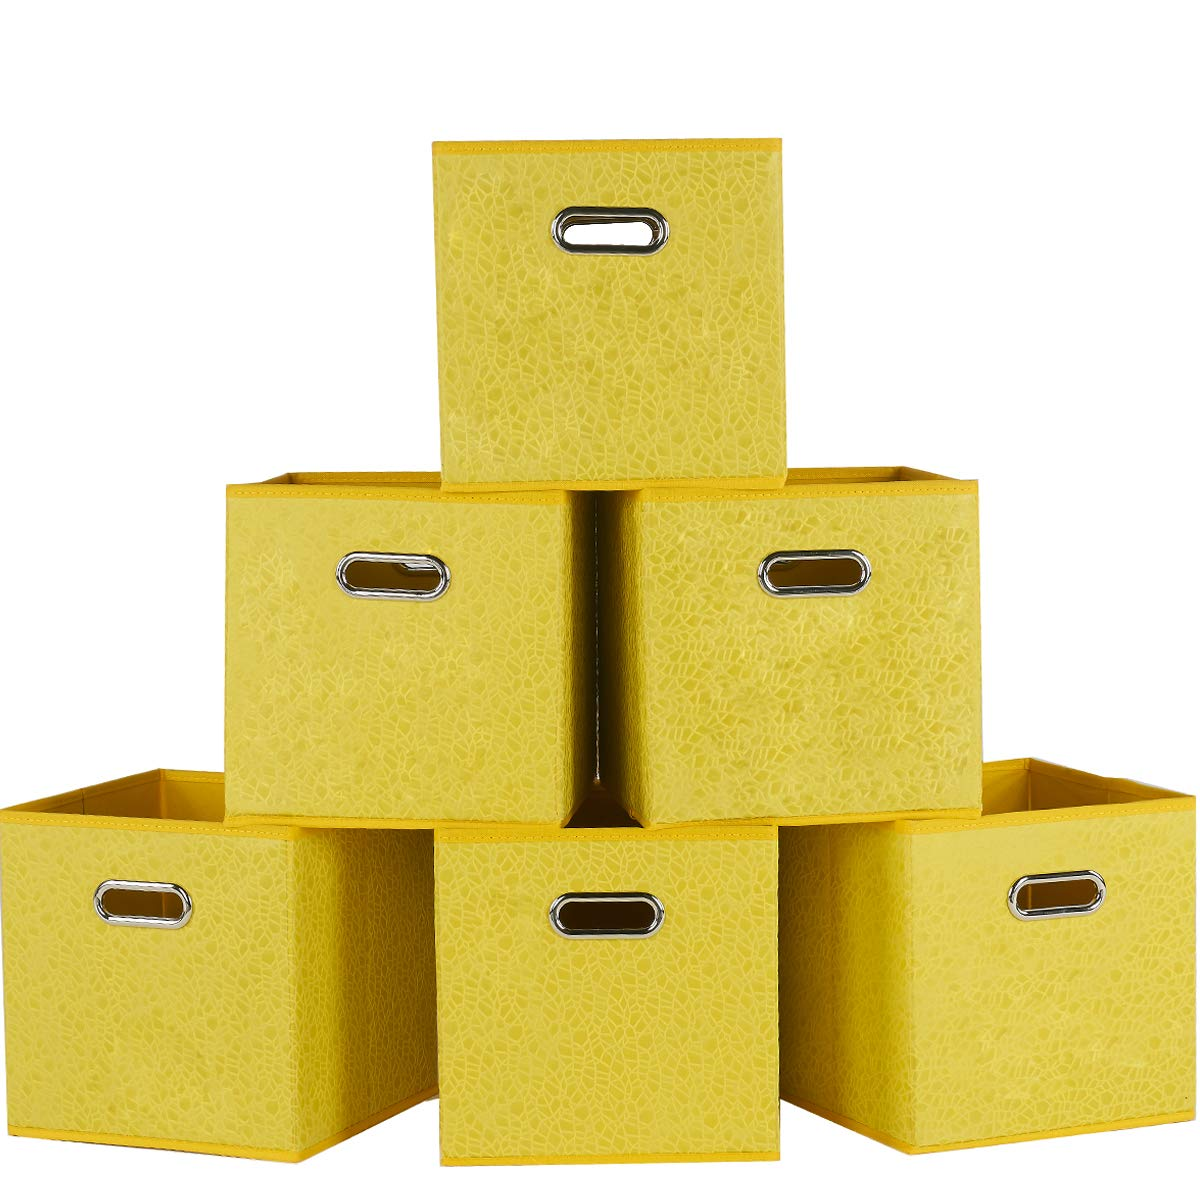 SHACO Durable Double Metal Handle Cloth Storage Cubes, Embossed with Tree Bark Print Yellow Foldable Cube Storage Bins(6 Packs)